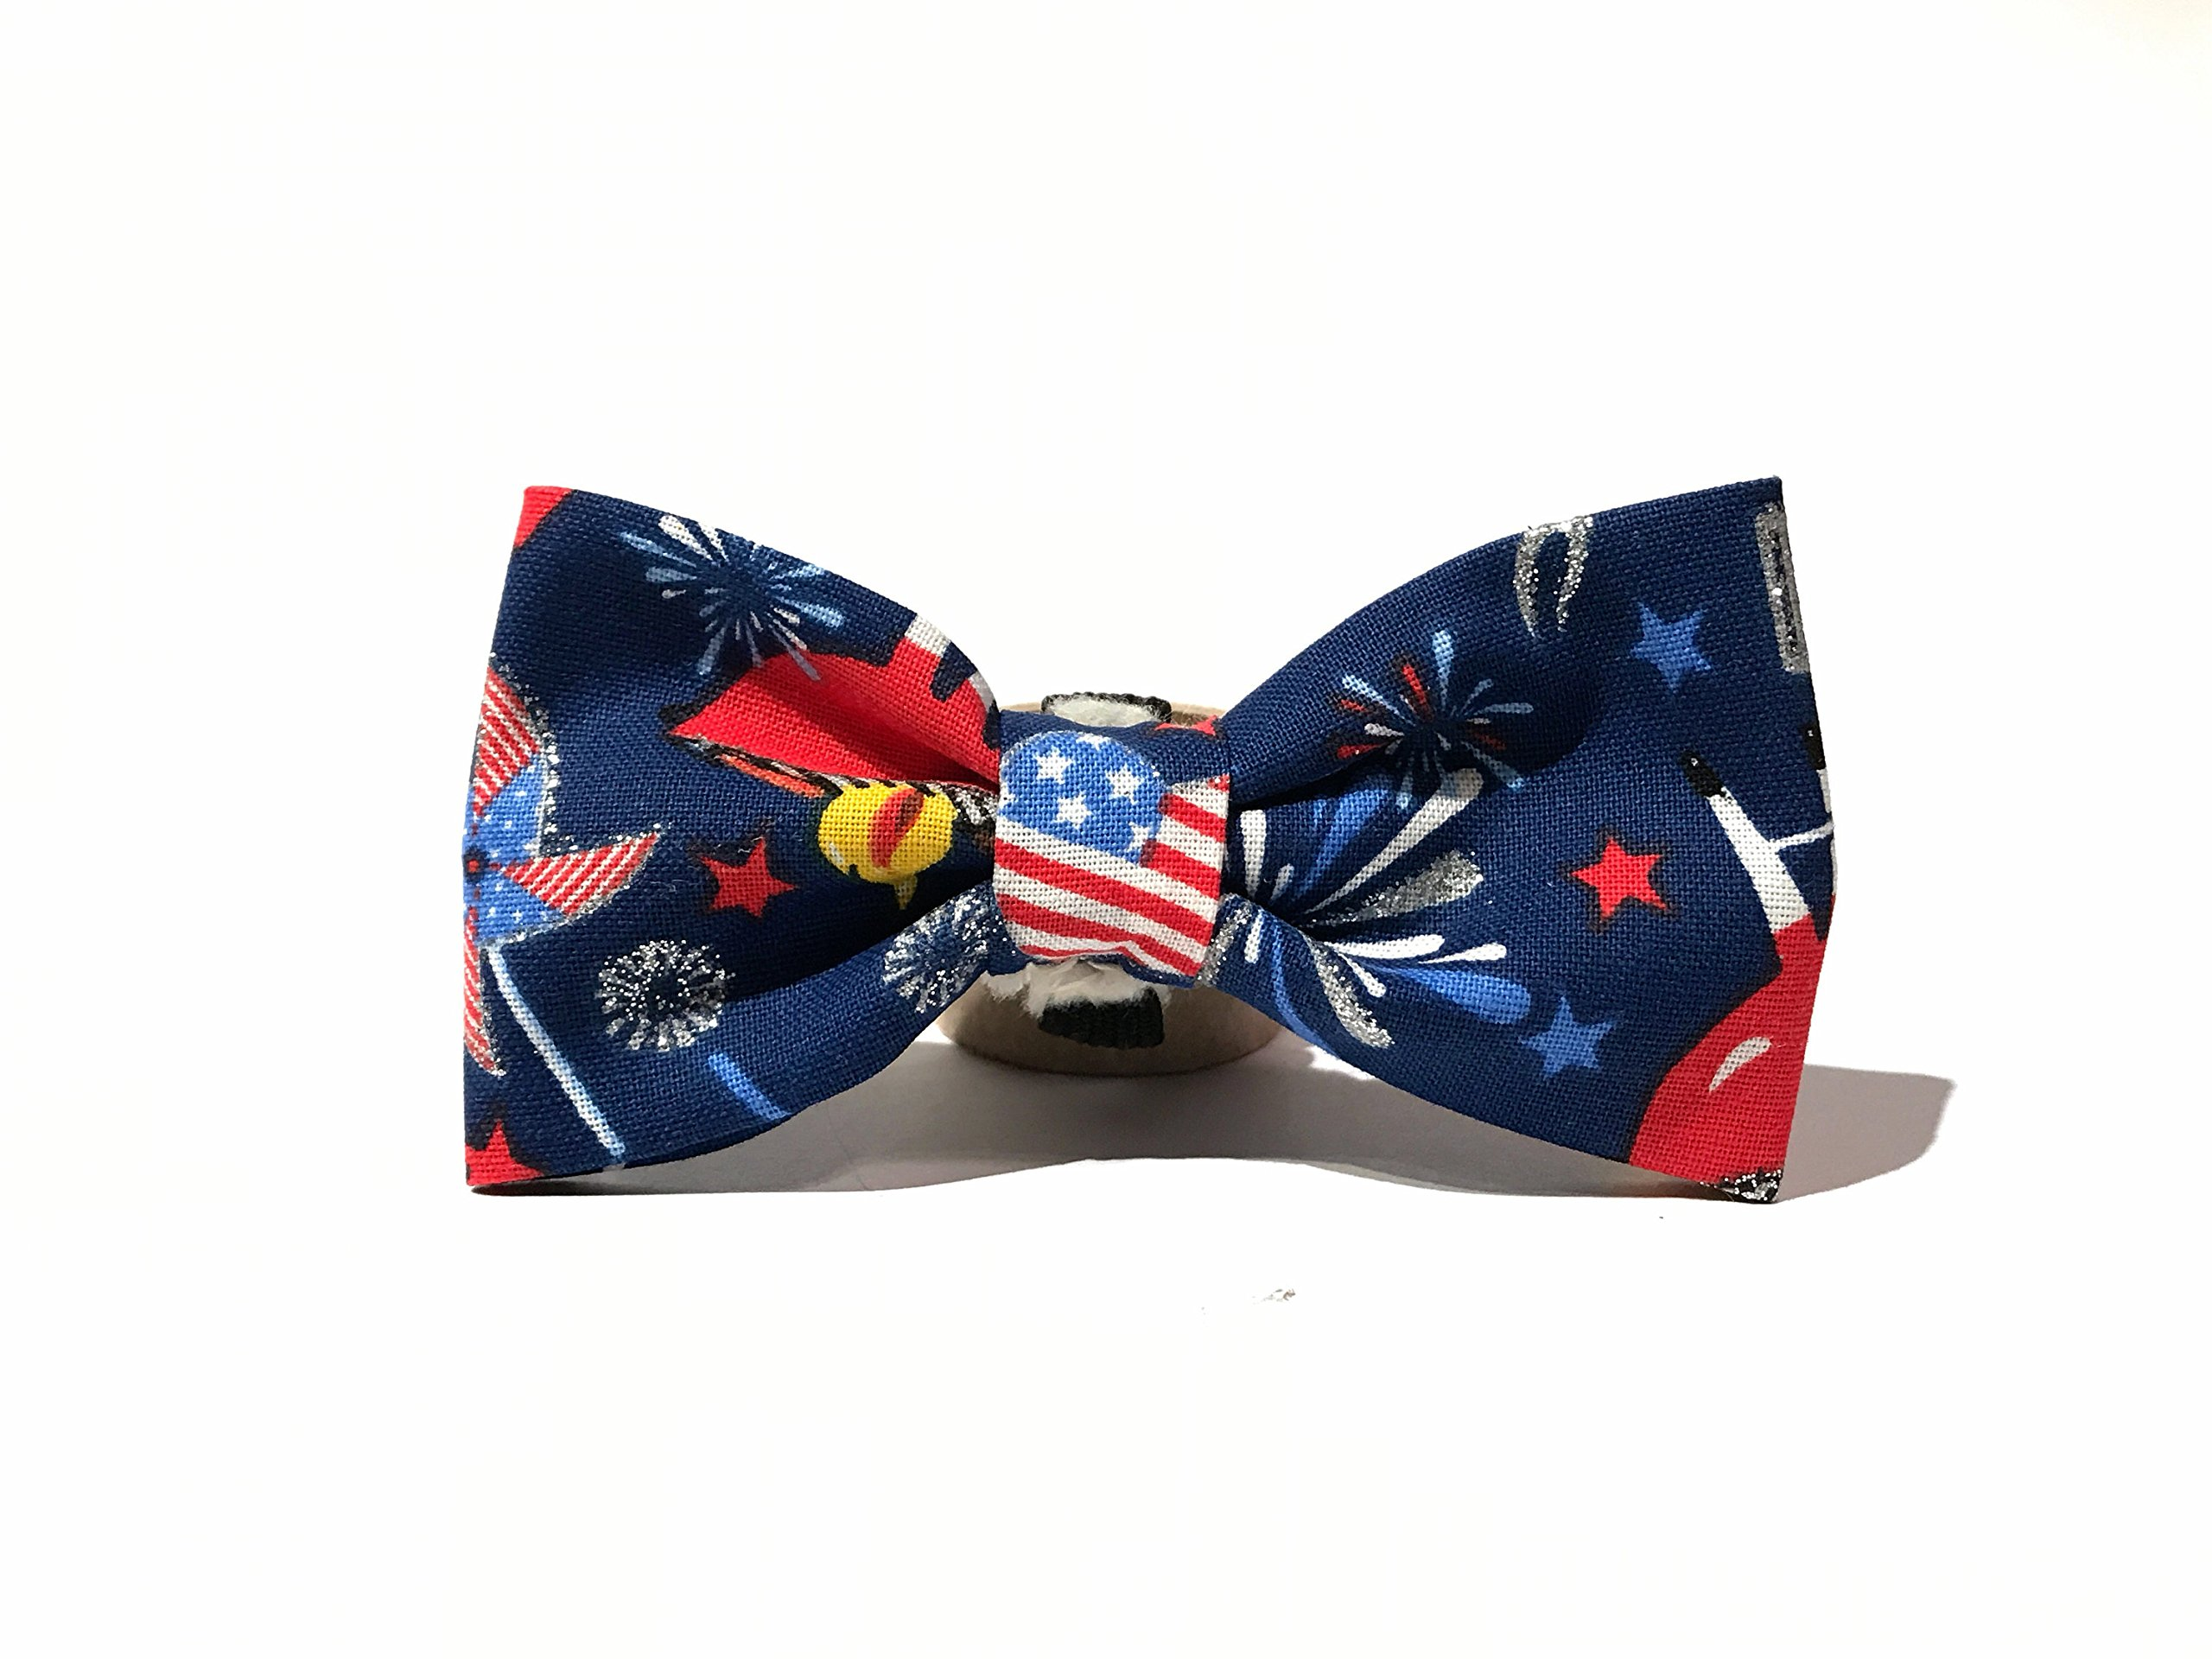 Very Vintage Design Dog Cat Collar Bow Tie July 4th Red White Blue Fireworks BBQ Playful Summer Fun Hand Crafted Collection Organic Cotton Personalized Adjustable Pet Bowtie